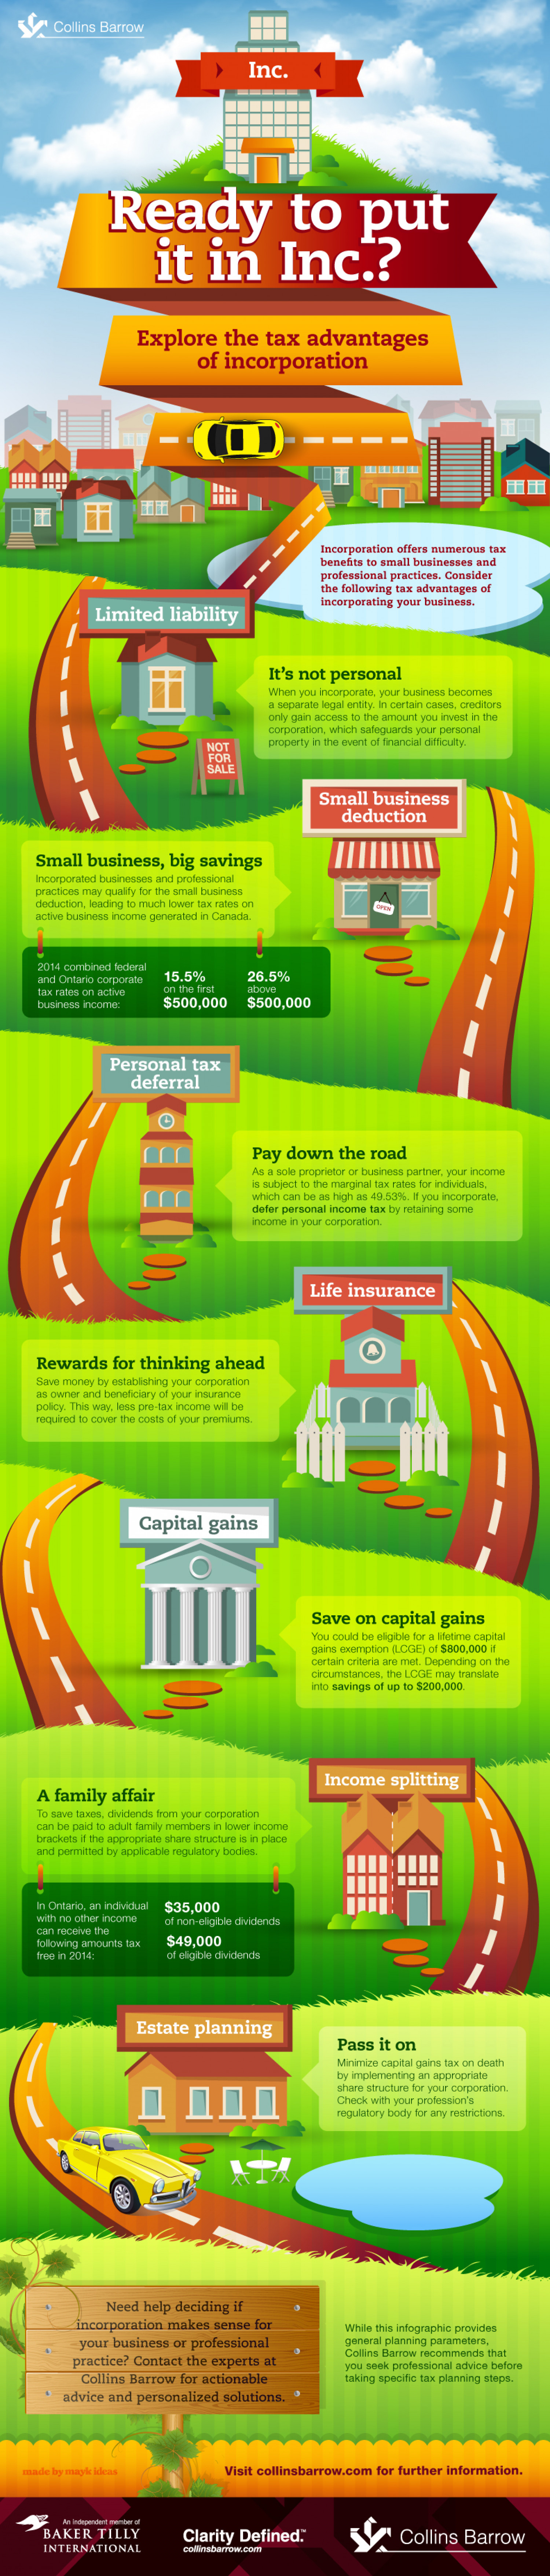 Ready To Put It In Inc.? Infographic